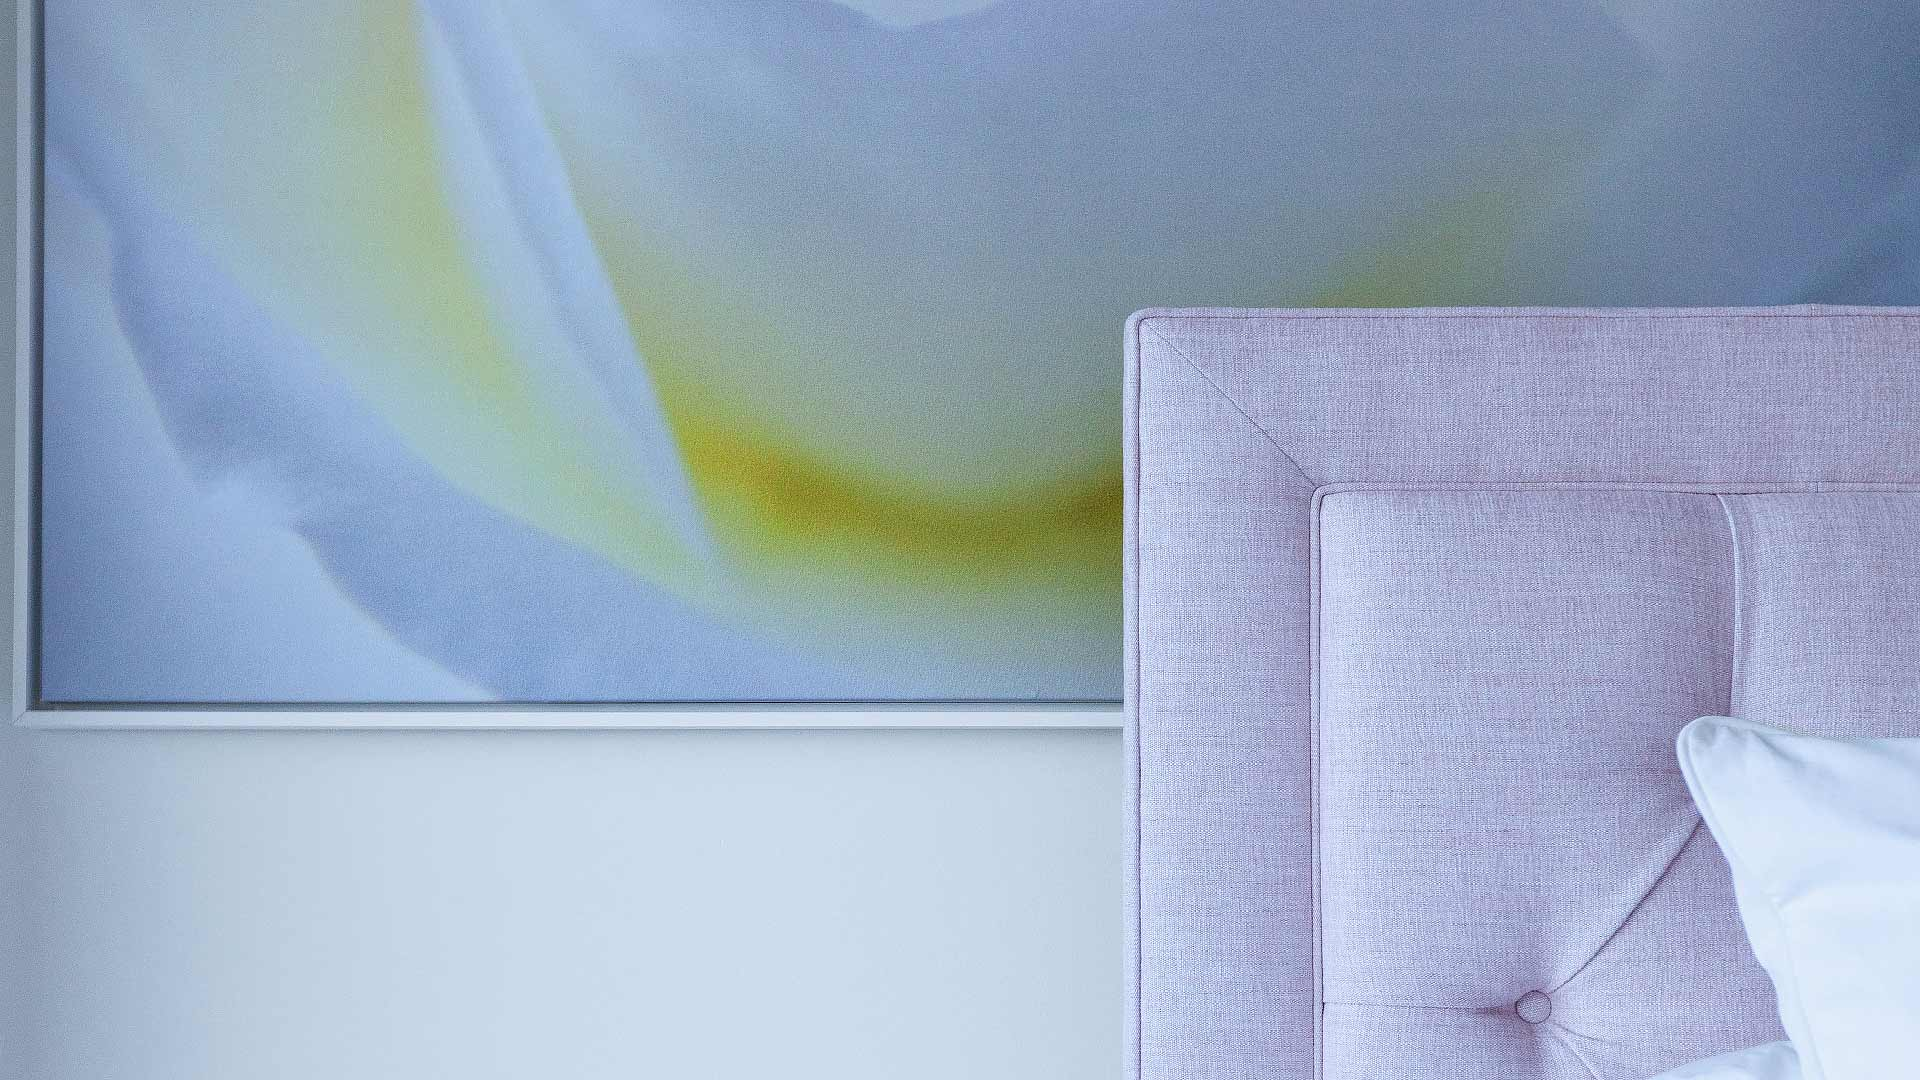 Fabric headboard overlaps large pastel artwork - Modern Lakehouse Renovation - Clearwater - HAUS | Architecture For Modern Lifestyles - Christopher Short, Architect - Derek Mills, Project manager - WERK | Building Modern (Construction Manager + Custom Builder)